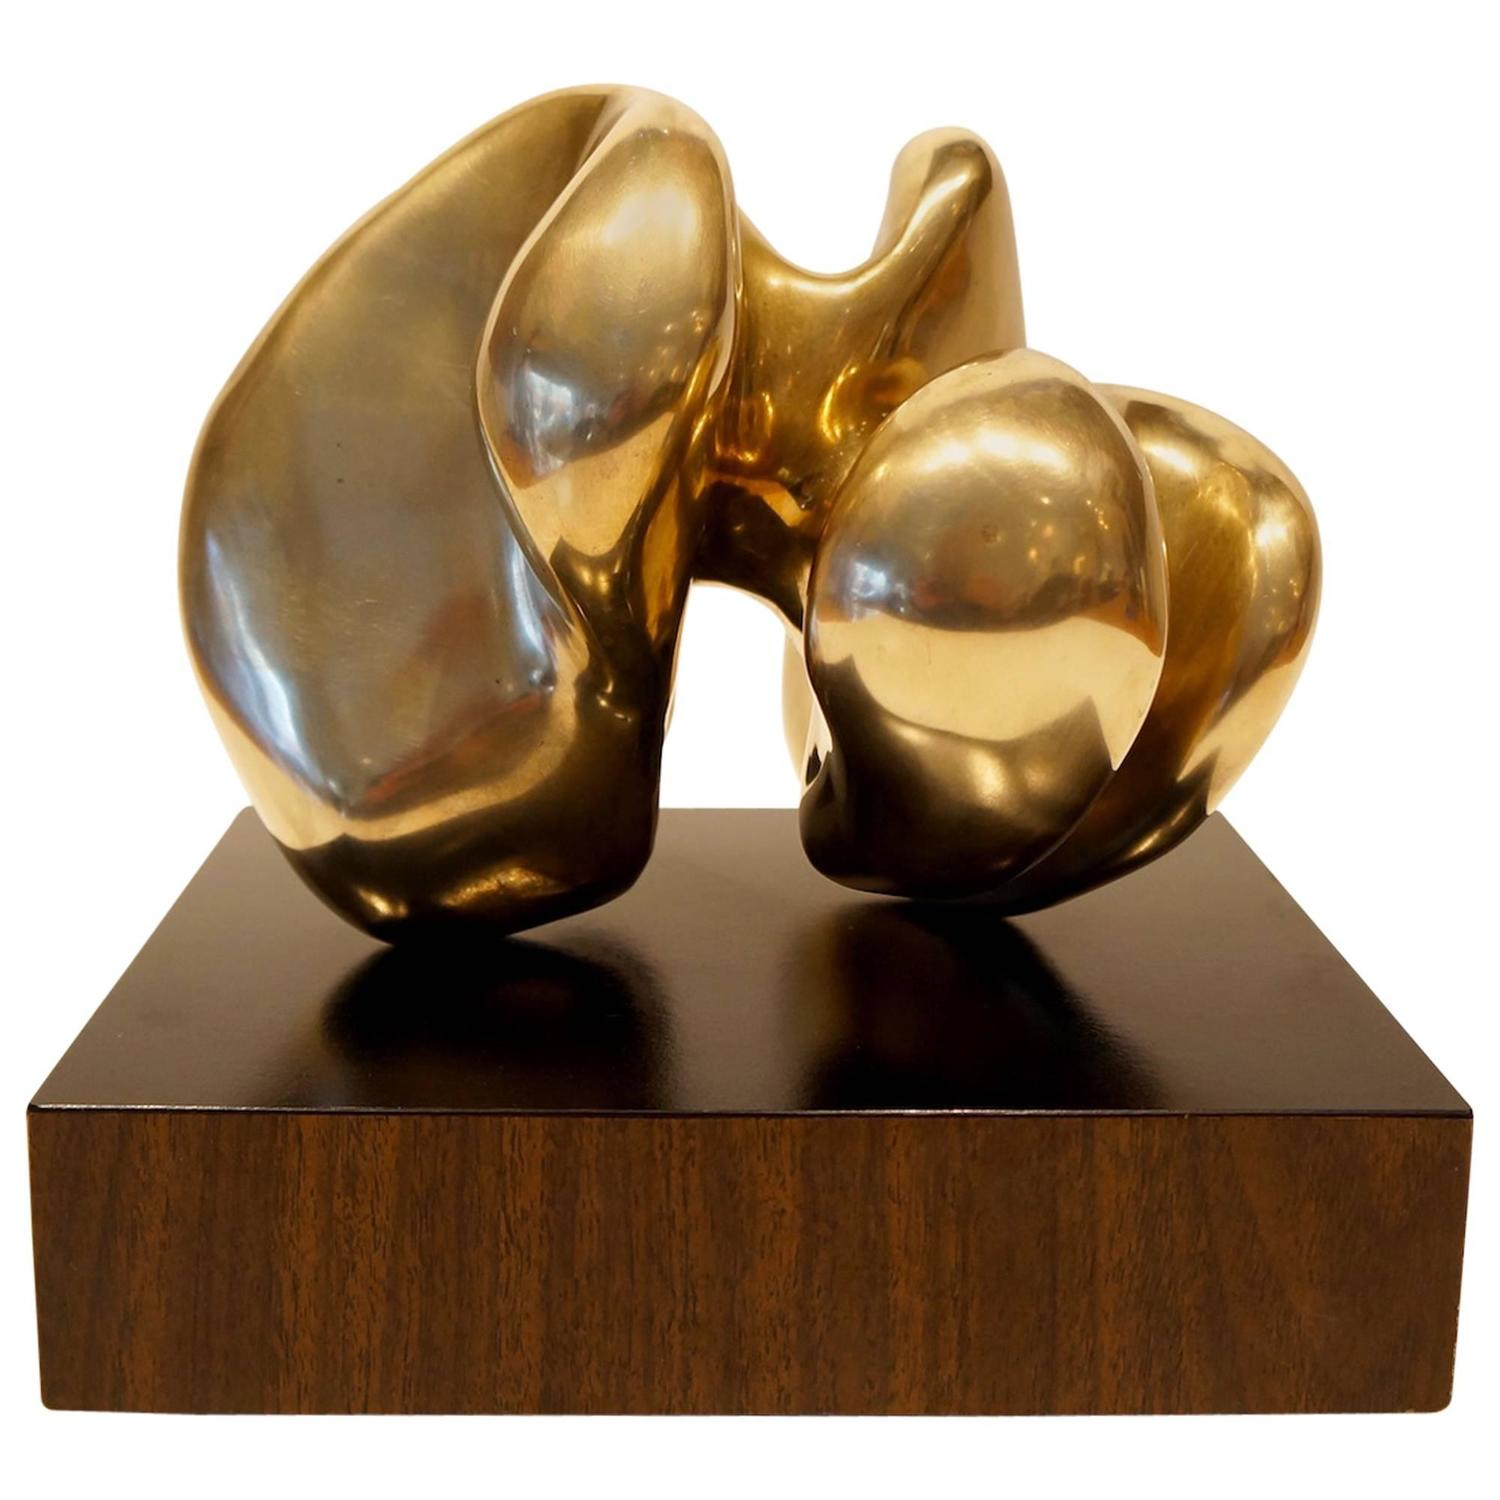 bronze abstract sculpture by eli karpel at 1stdibs. Black Bedroom Furniture Sets. Home Design Ideas